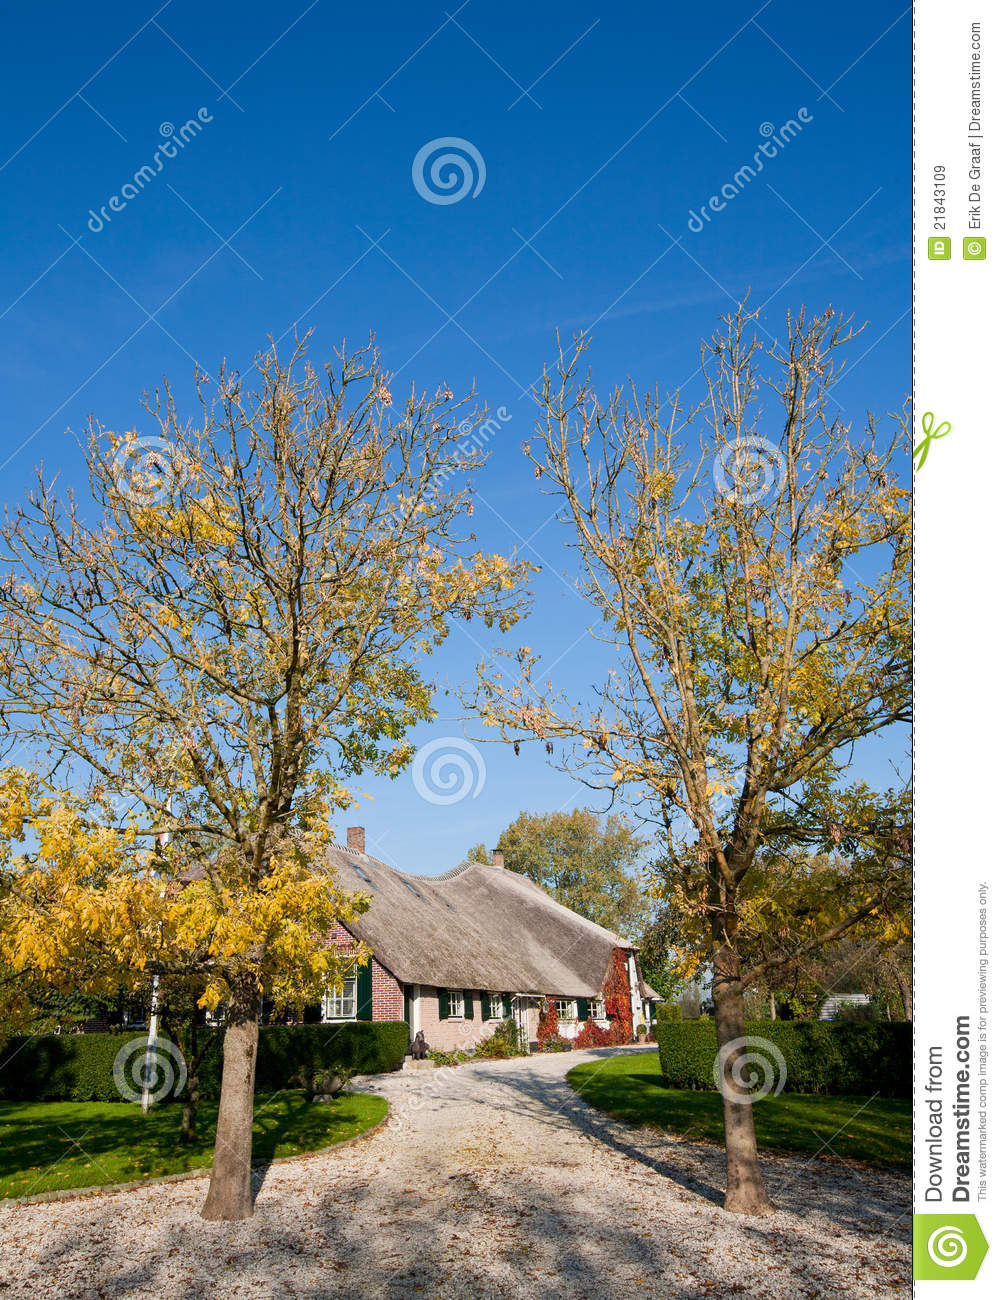 Dutch farm house royalty free stock images image 21843109 for Farm house netherlands